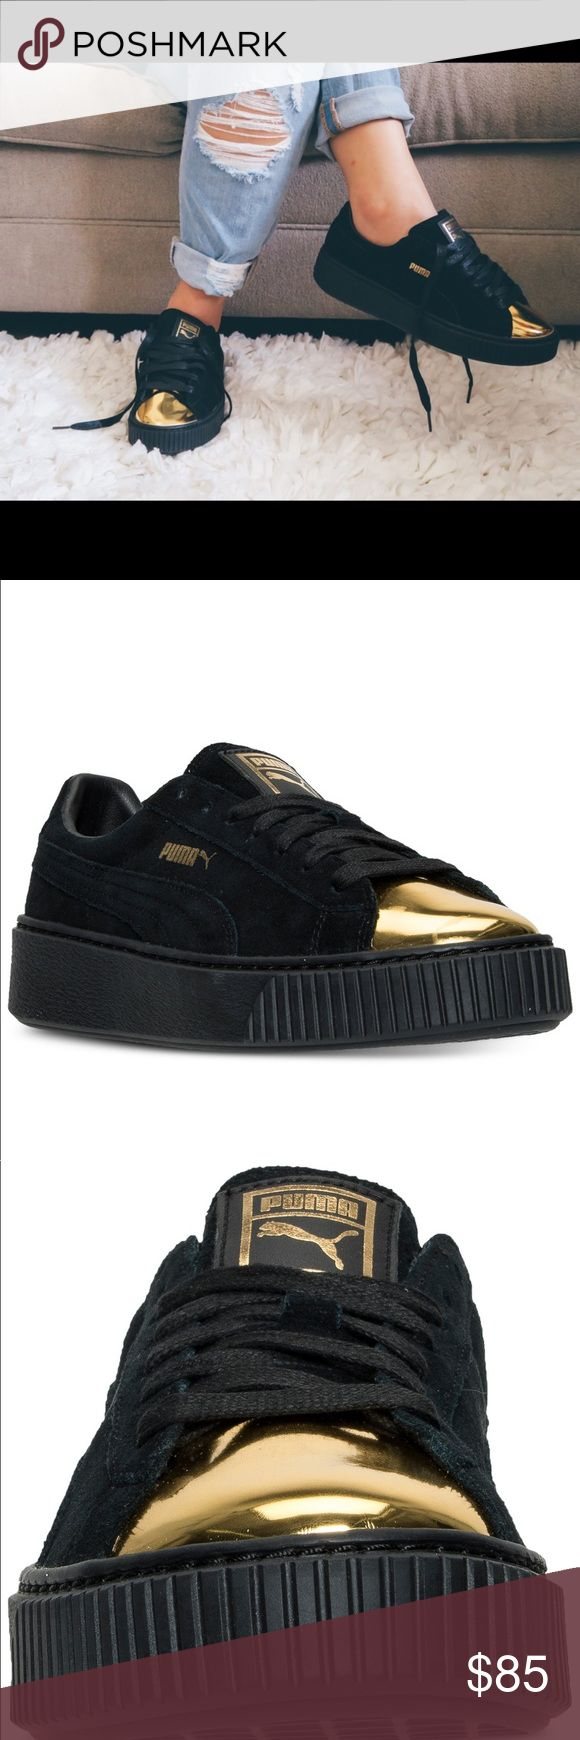 Puma Creepers Uppers